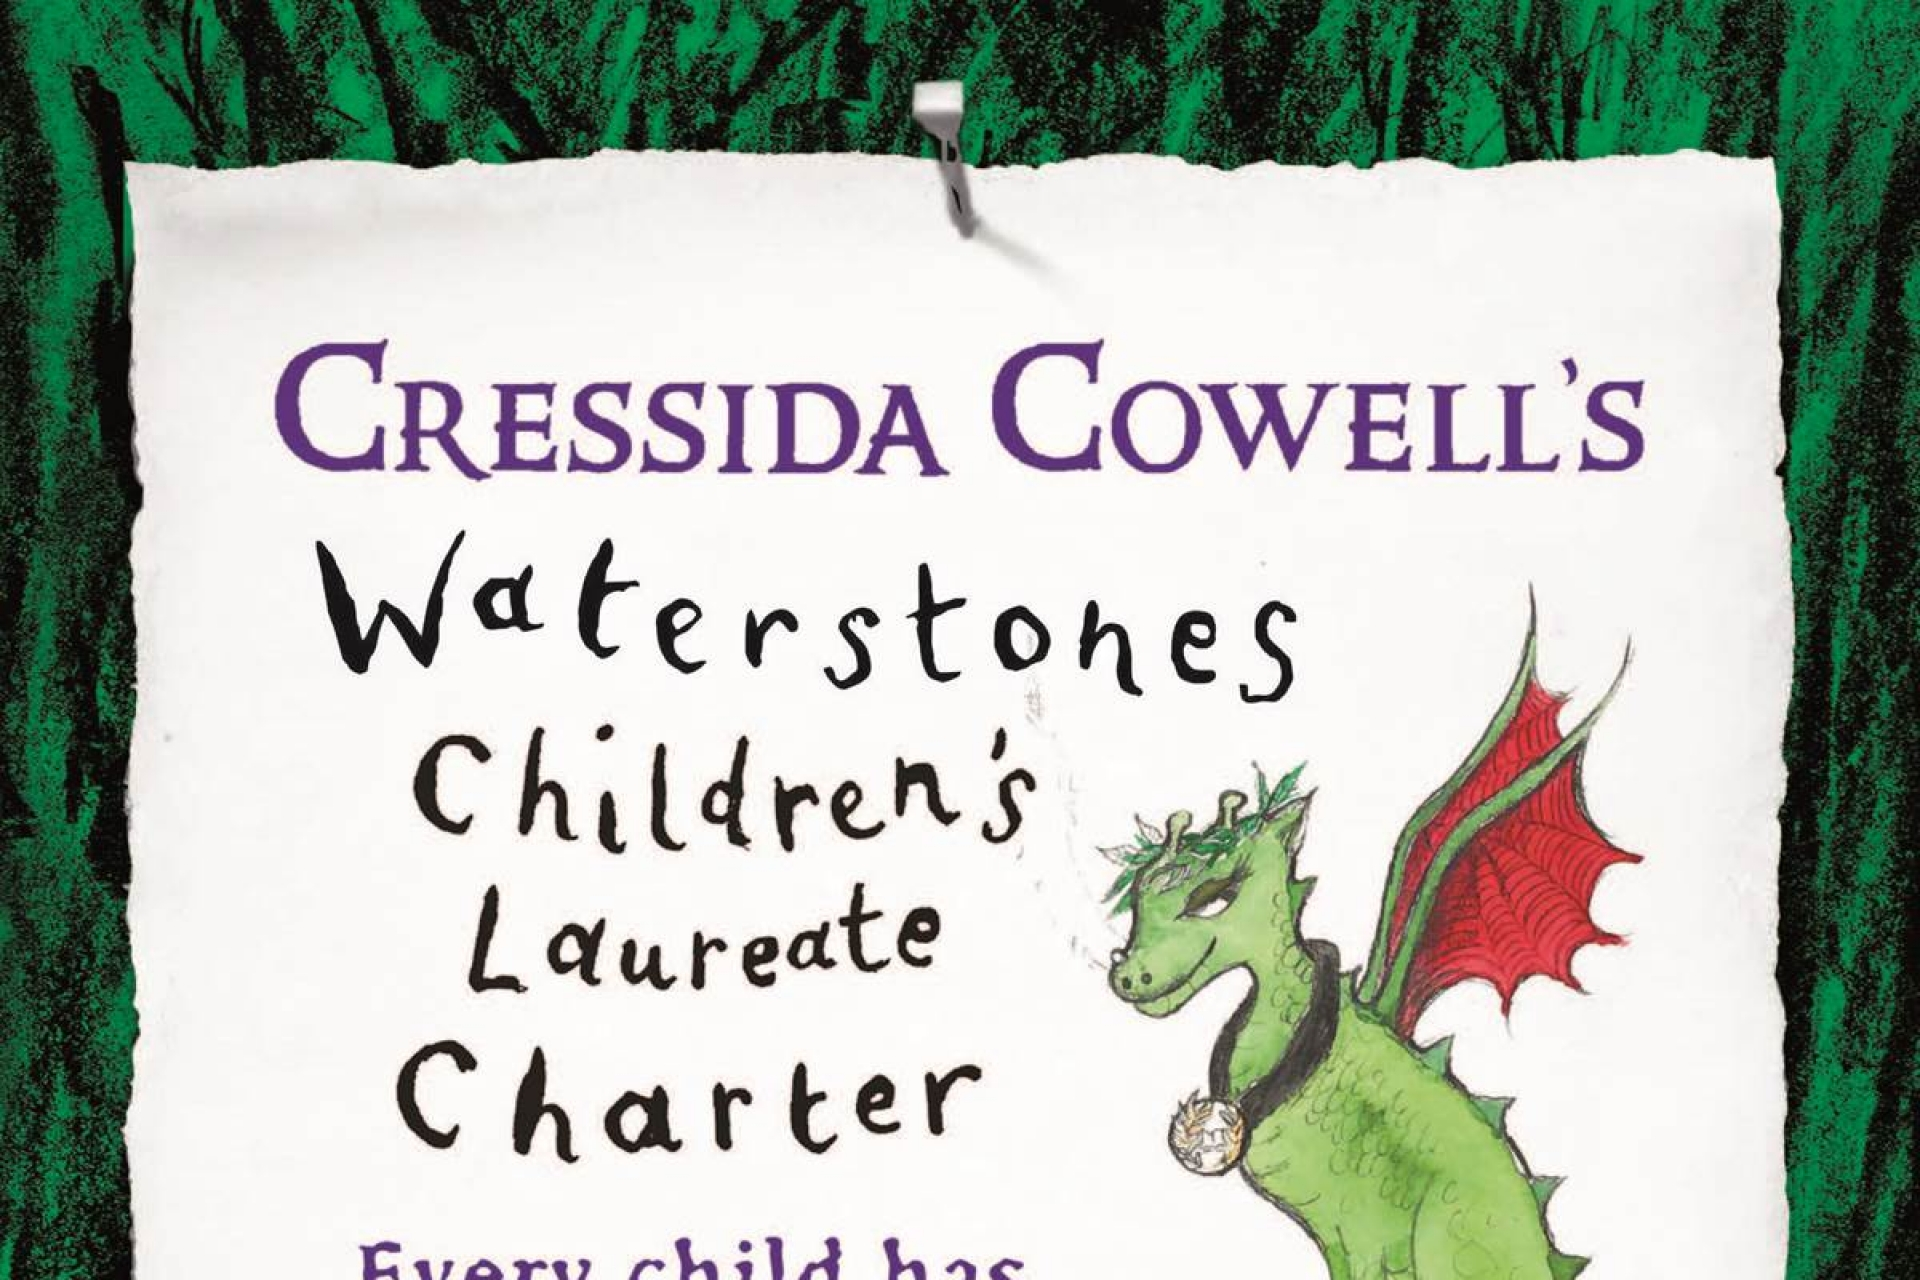 Cressida Cowell, Waterstones Children's Laureate 2019–2021